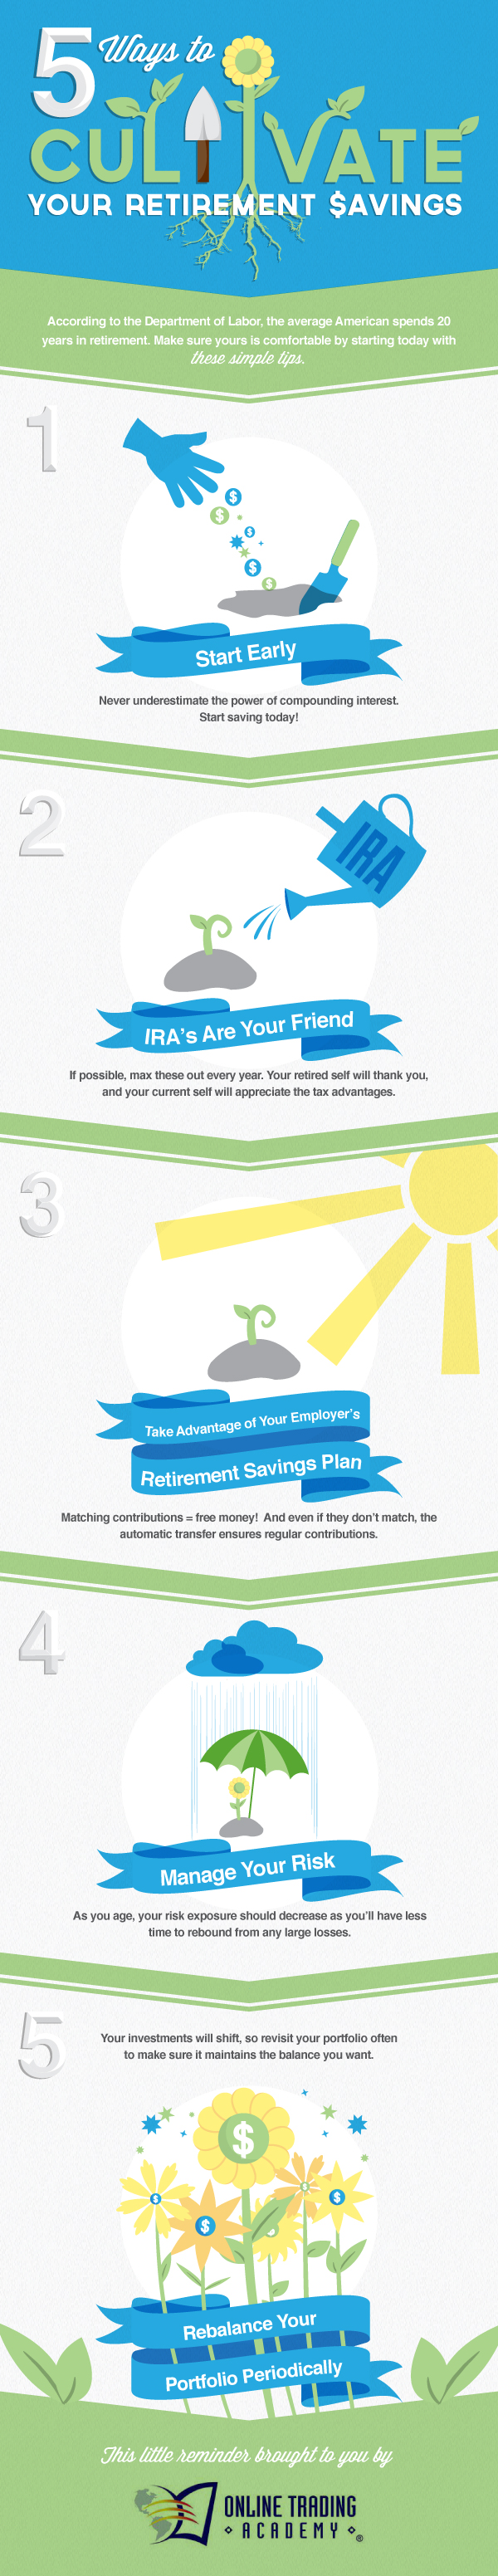 How-To-Save-For-Retirement-Infographic